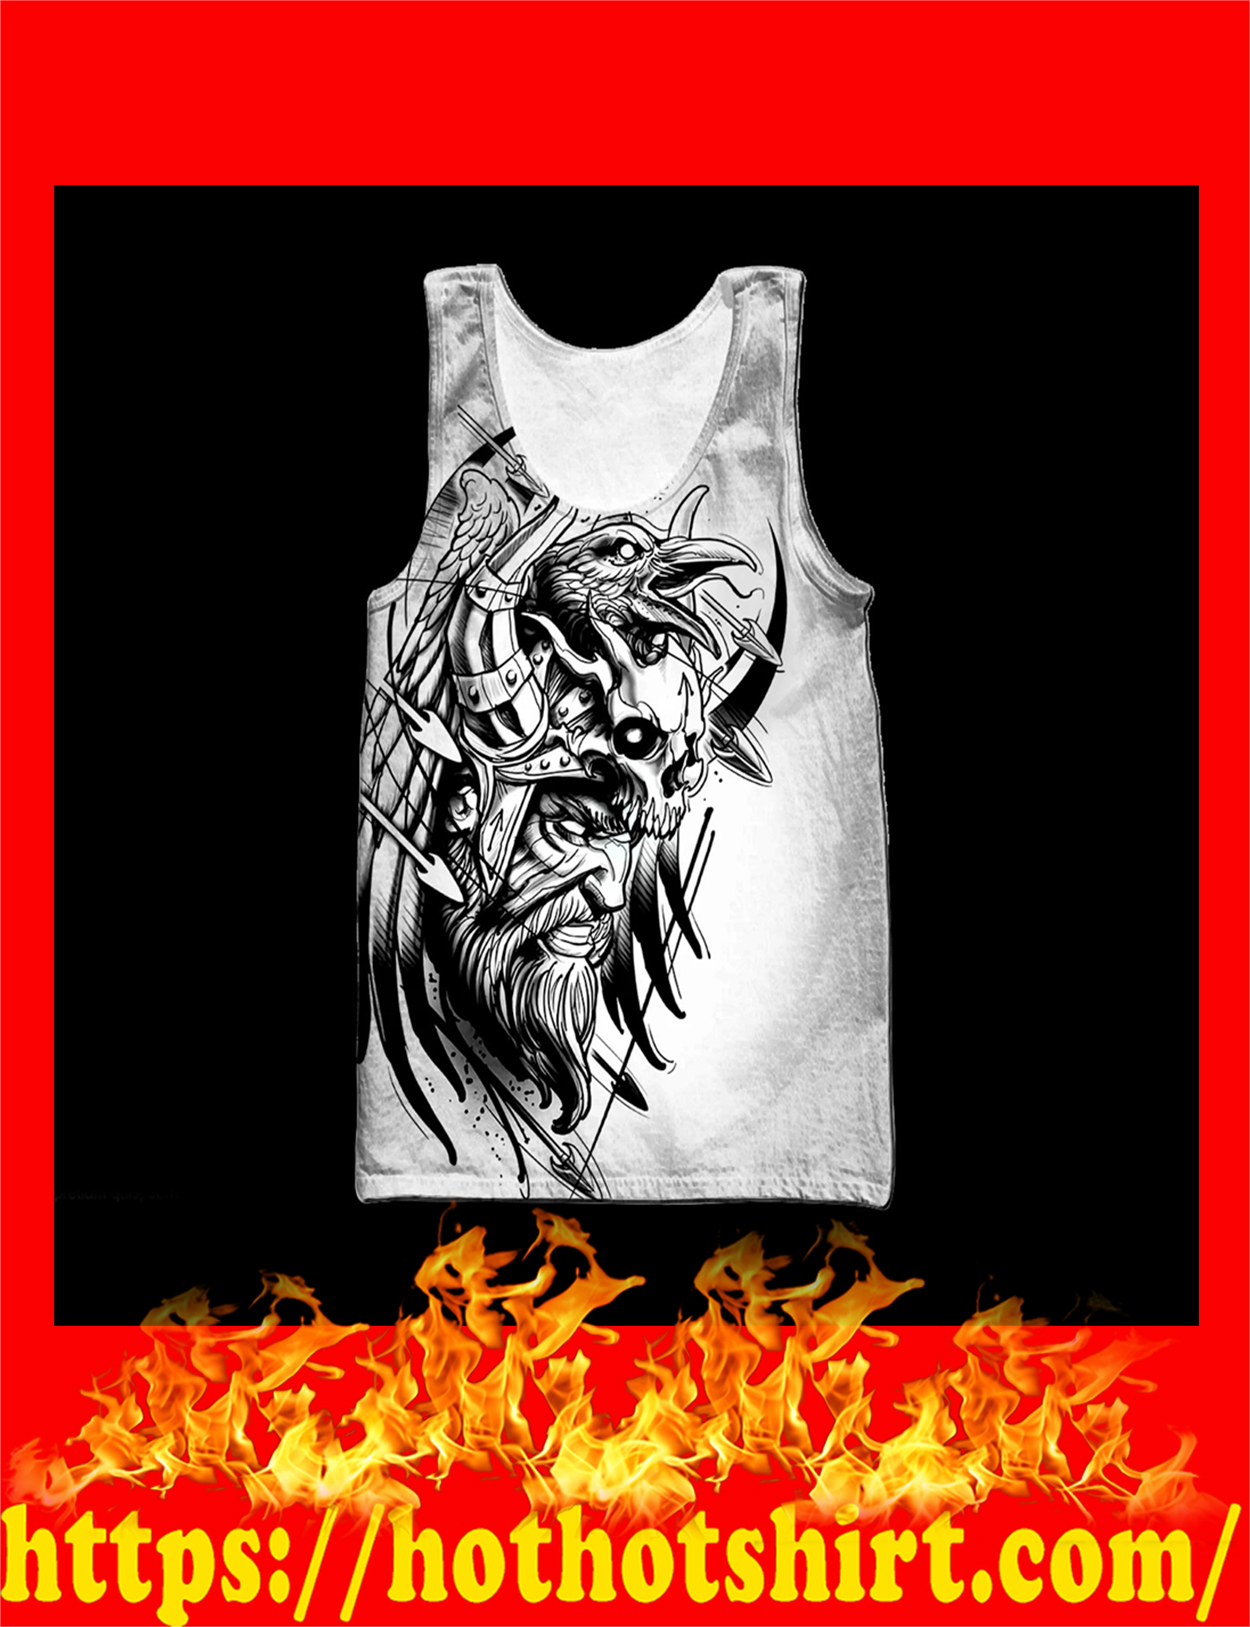 Love viking tattoos 3d all over printed tank top